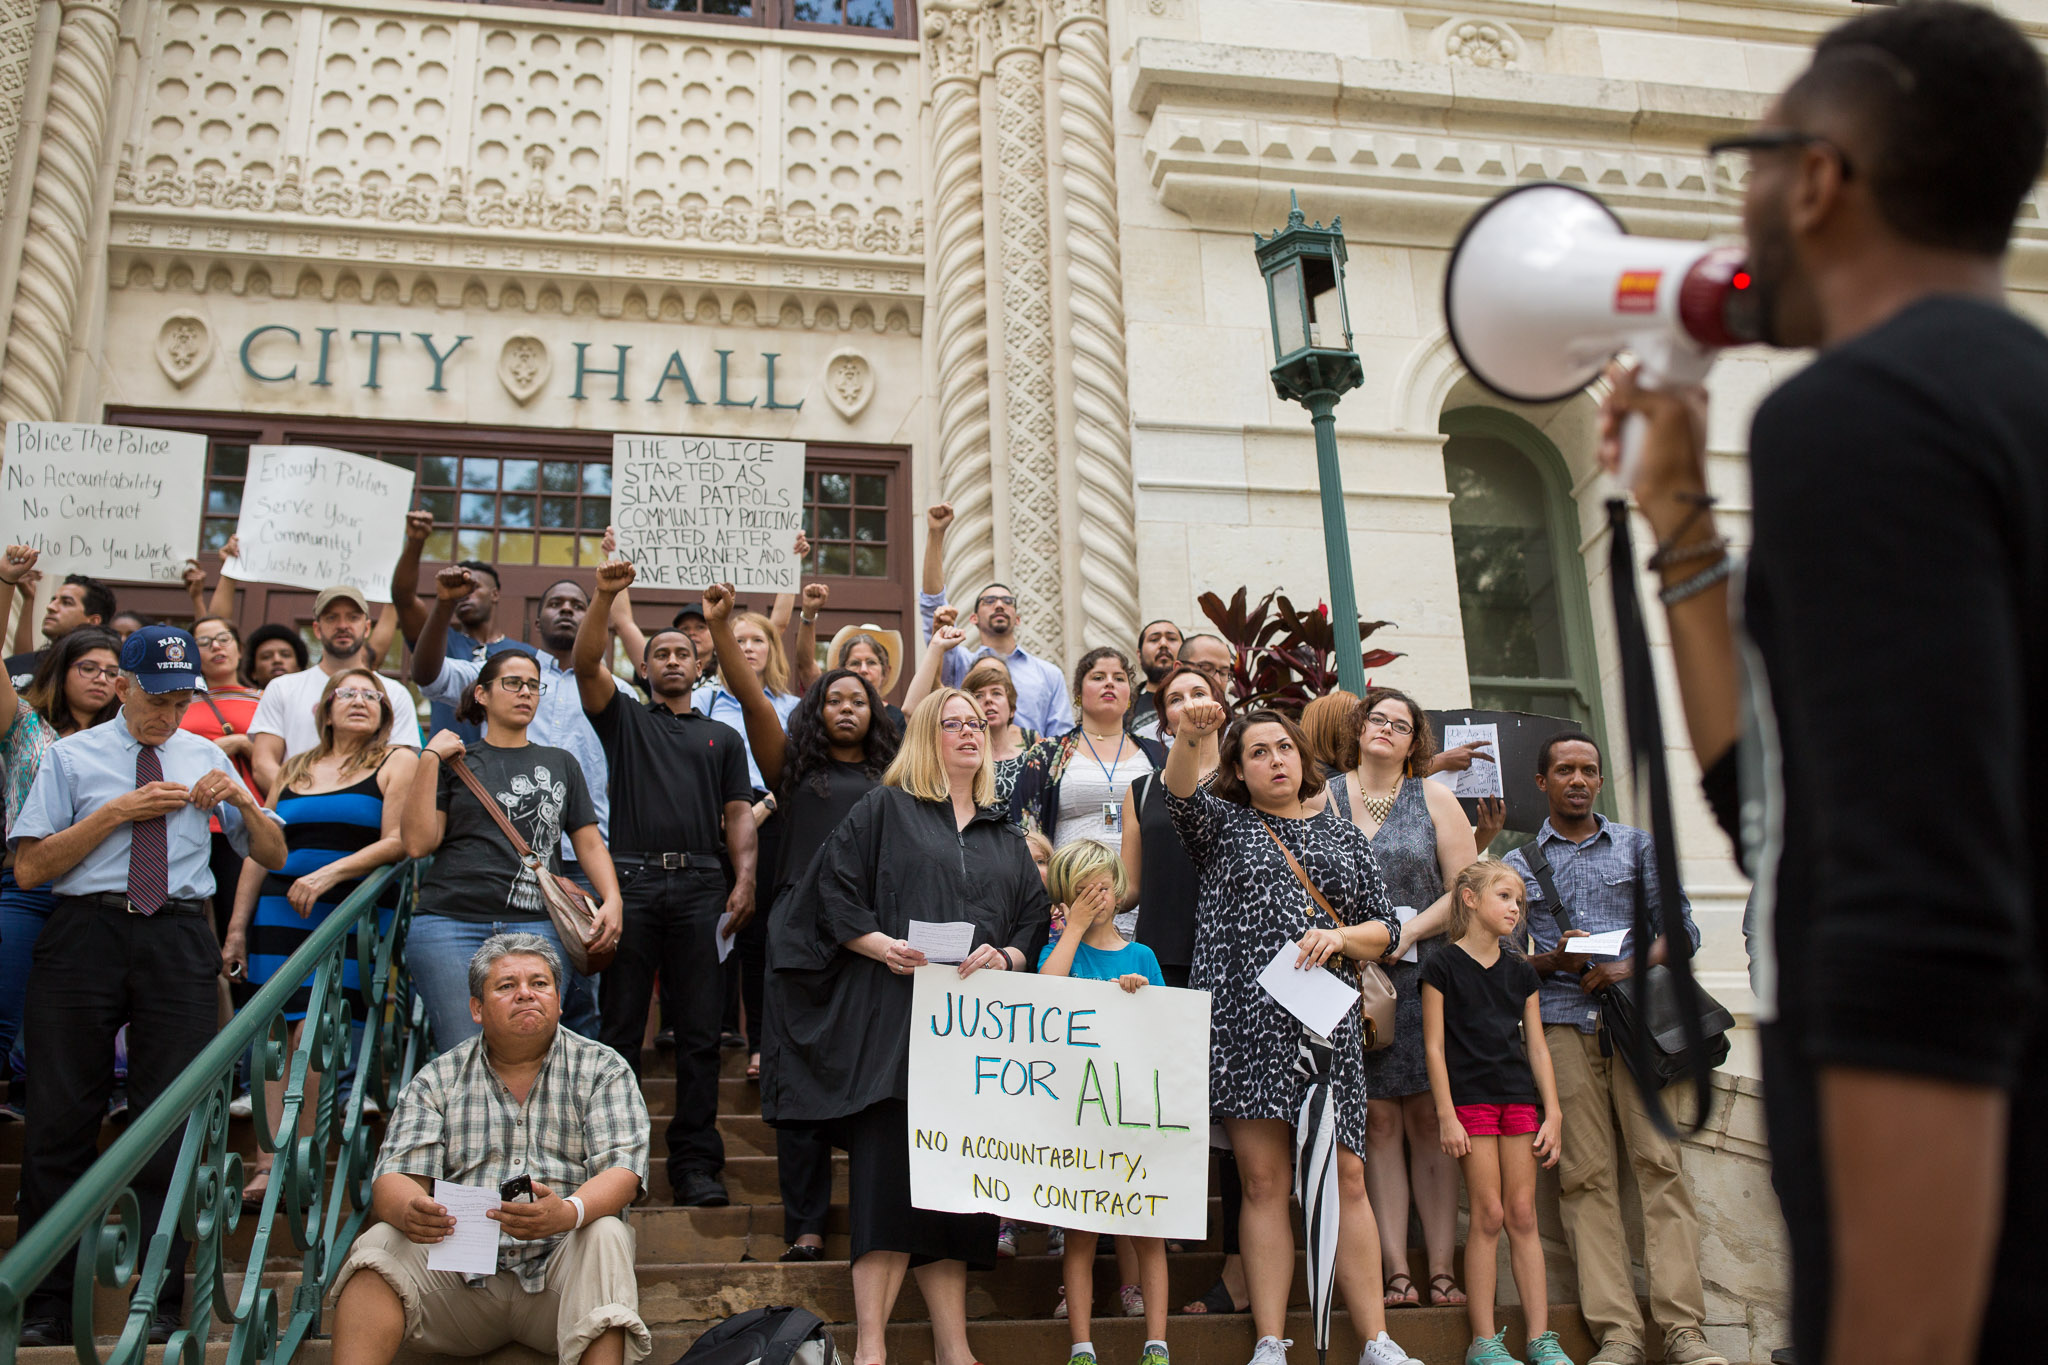 Mike Lowe (right) chants with members of the Black Lives Matter movement on the City Hall steps. Photo by Scott Ball.